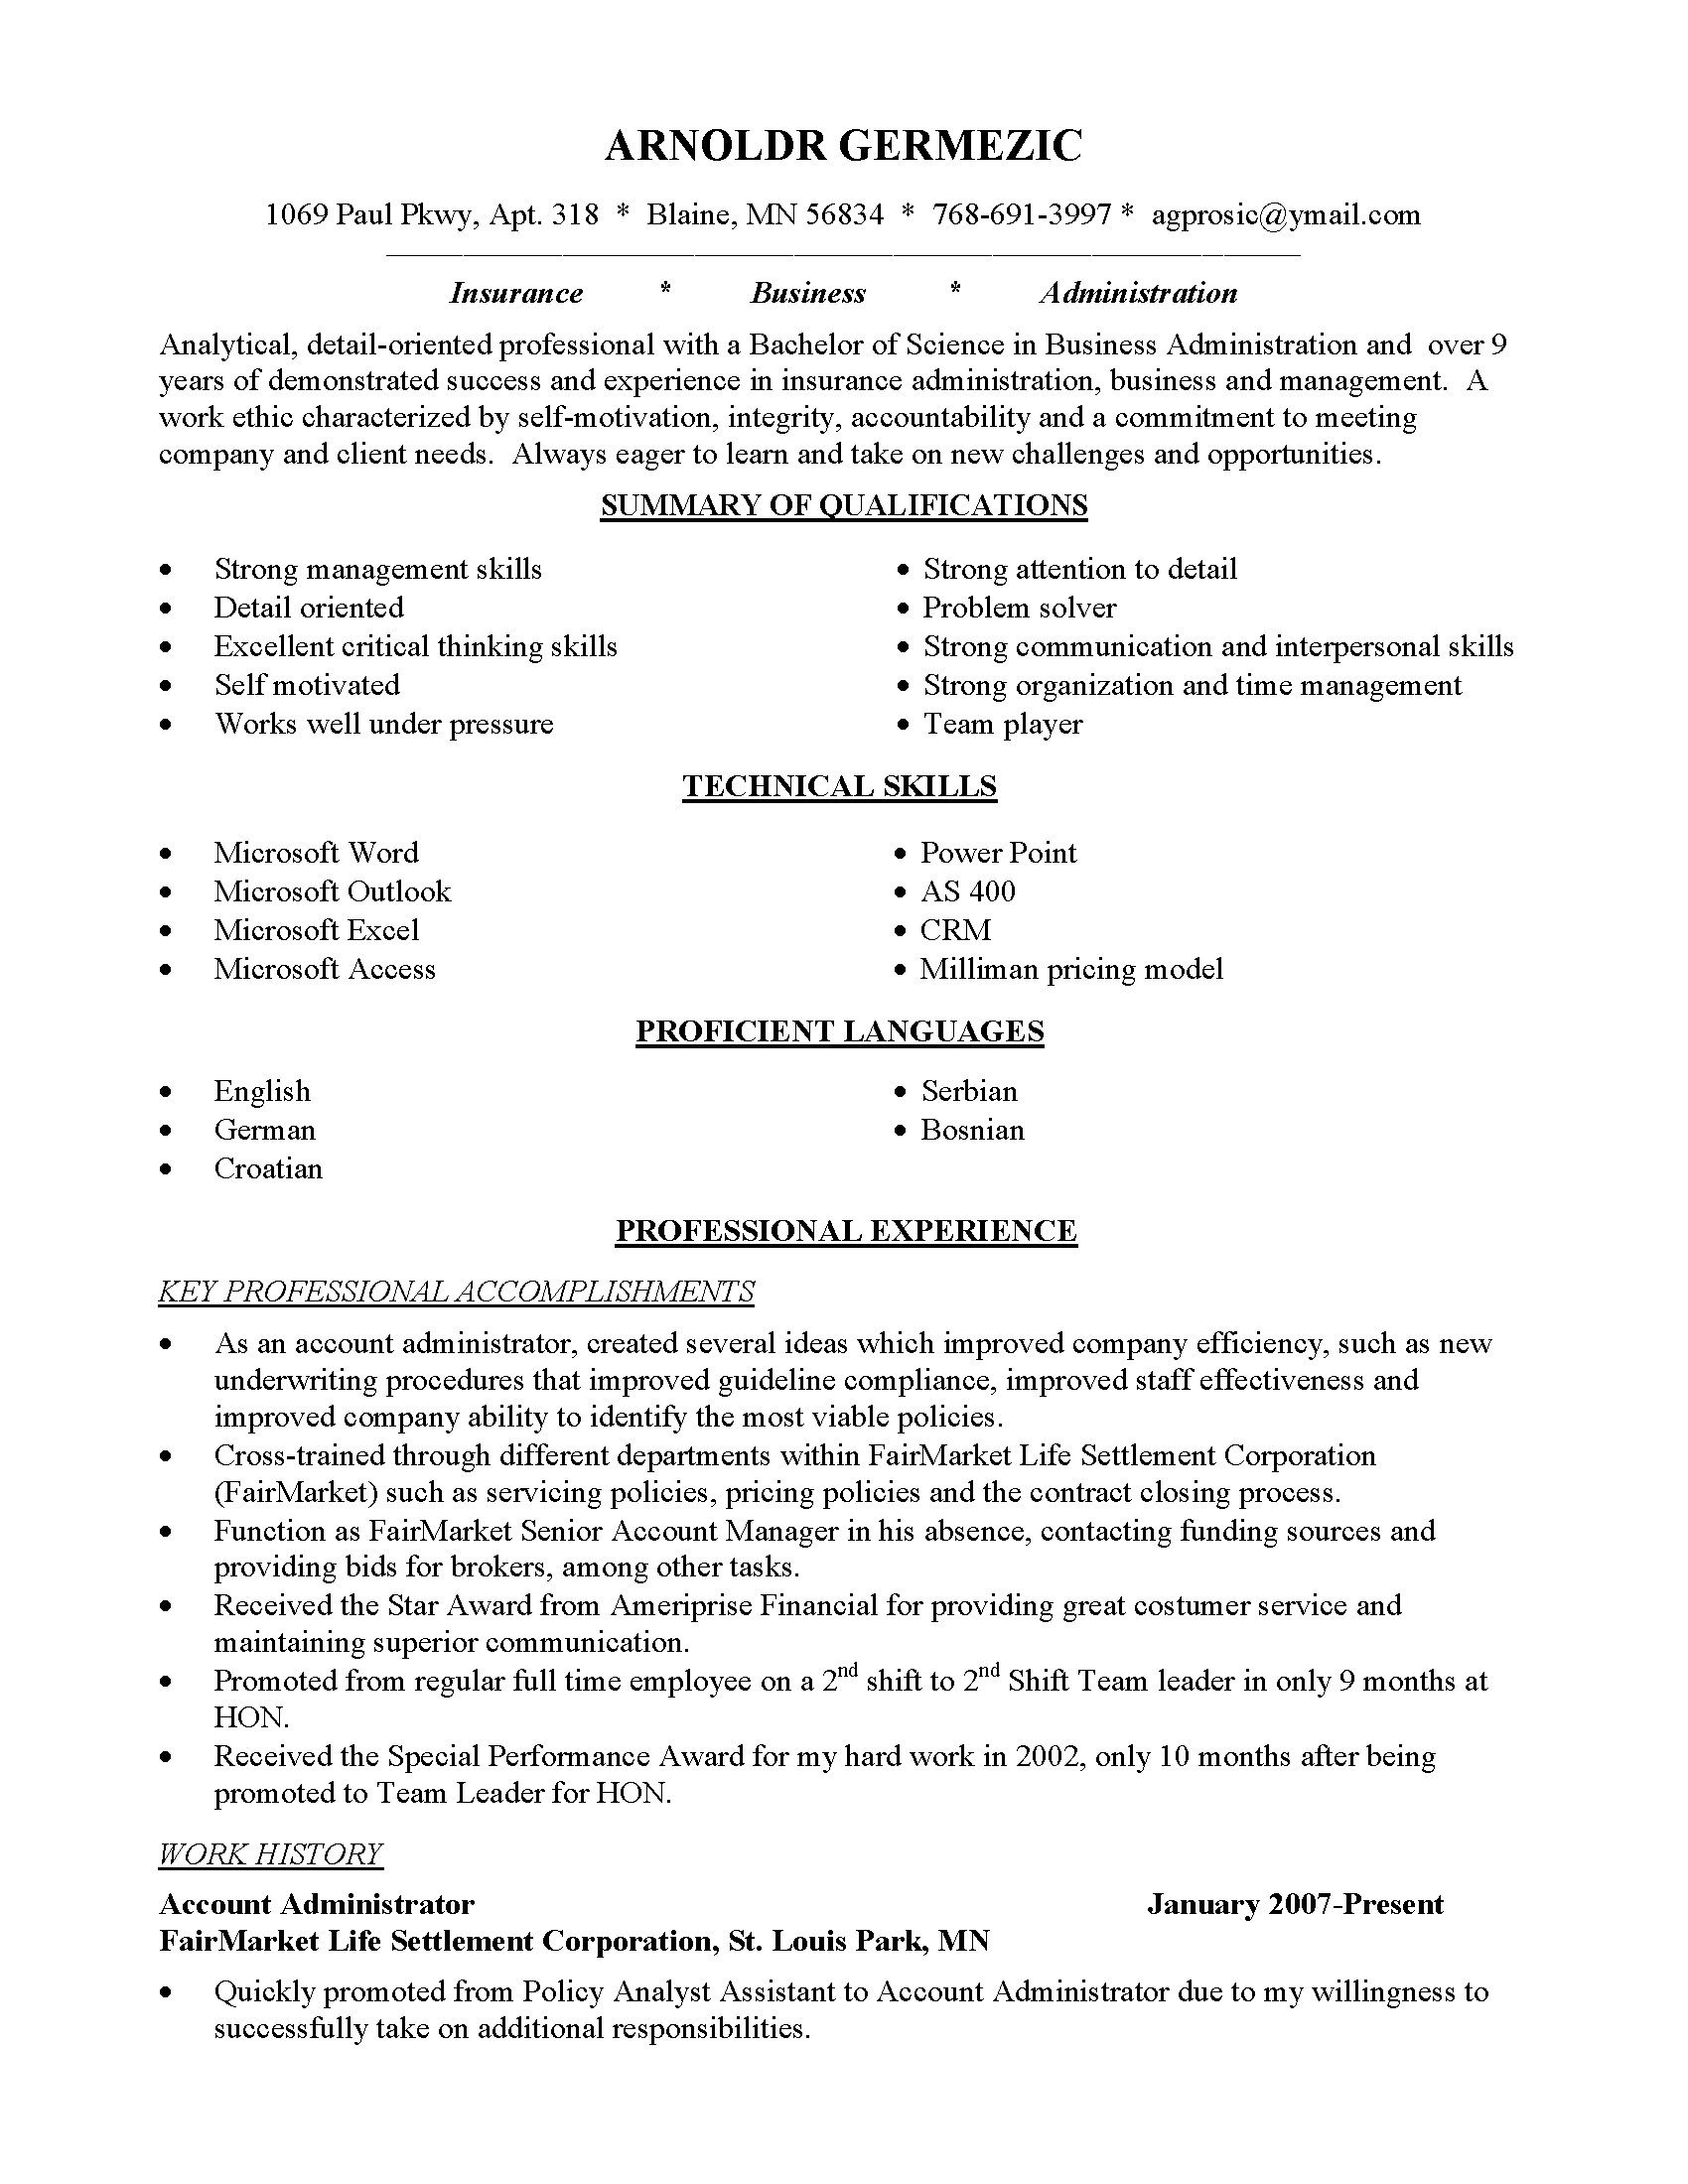 Resume for Career Change with No Experience Fresh Resume